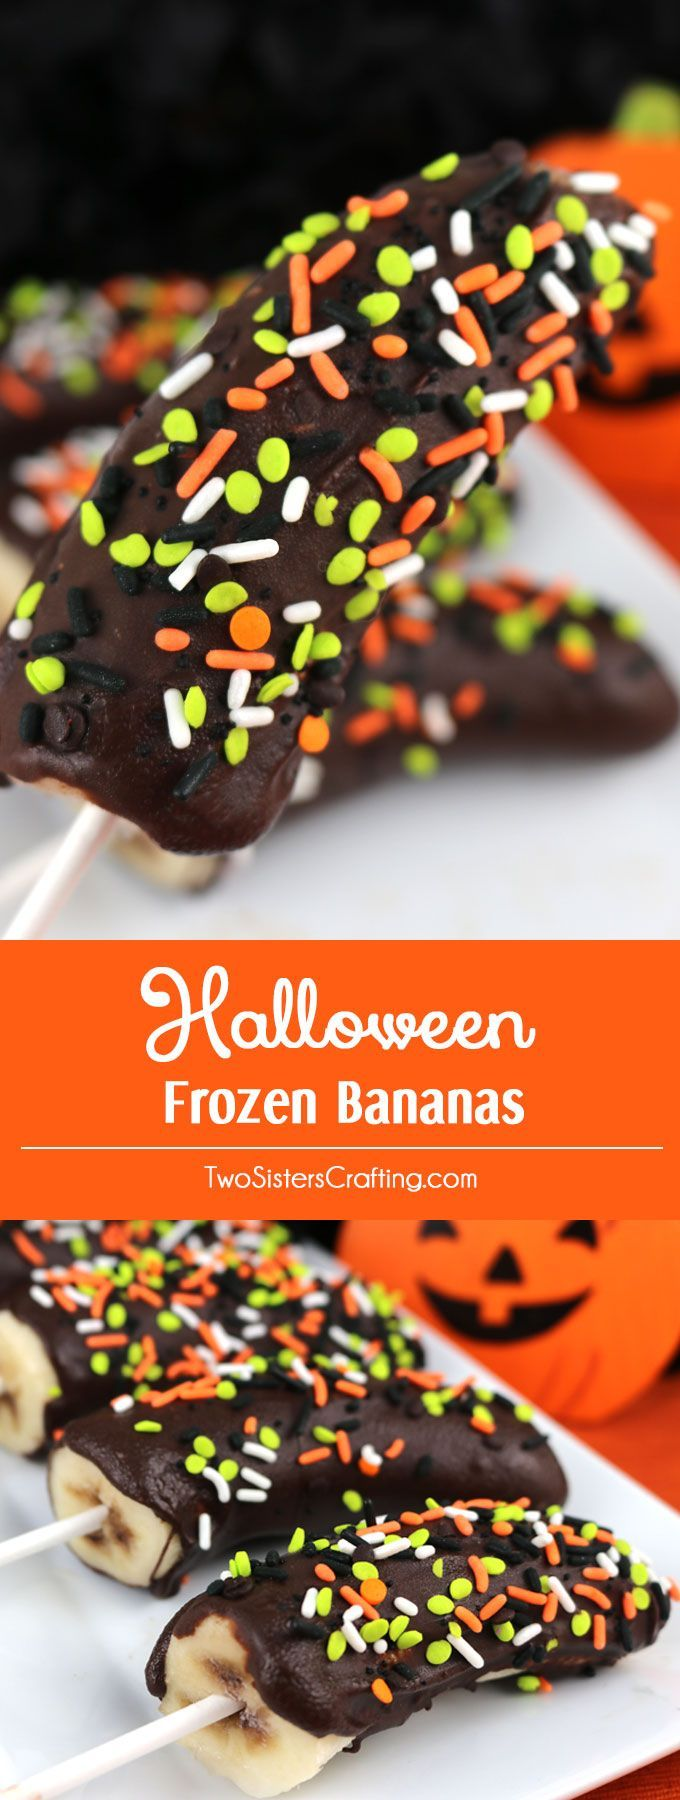 Halloween Frozen Bananas - easy to make Halloween homemade chocolate covered frozen bananas for a Halloween Party or a family movie night.  Call them Frozen Bananas or call them Monkey Tails but this delicious frozen treat will be a great Halloween dessert.  Pin this yummy Halloween treat for later and follow us for more Halloween Food ideas.